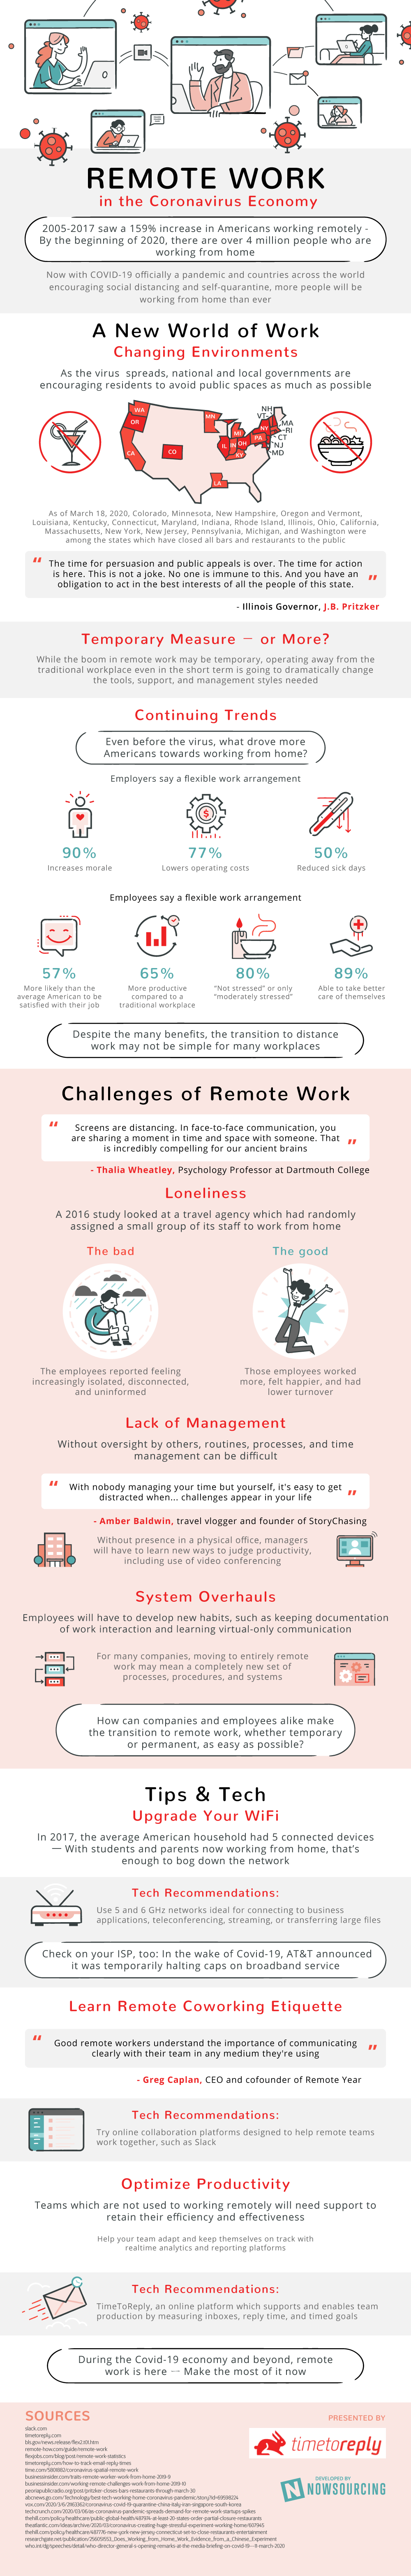 Remote Work in the Coronavirus Economy